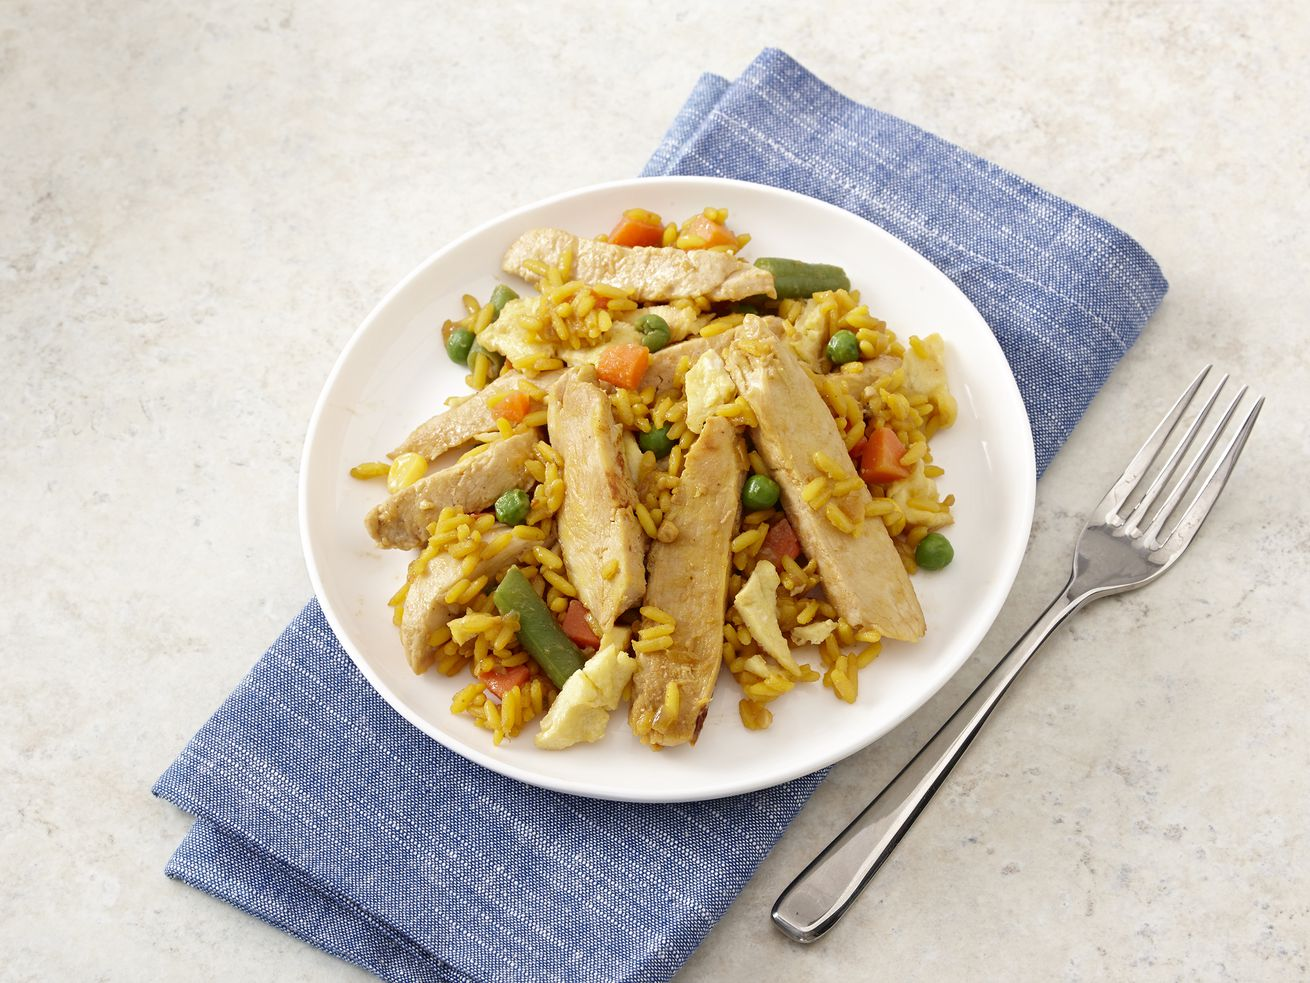 Chicken stir-fry with yellow rice.